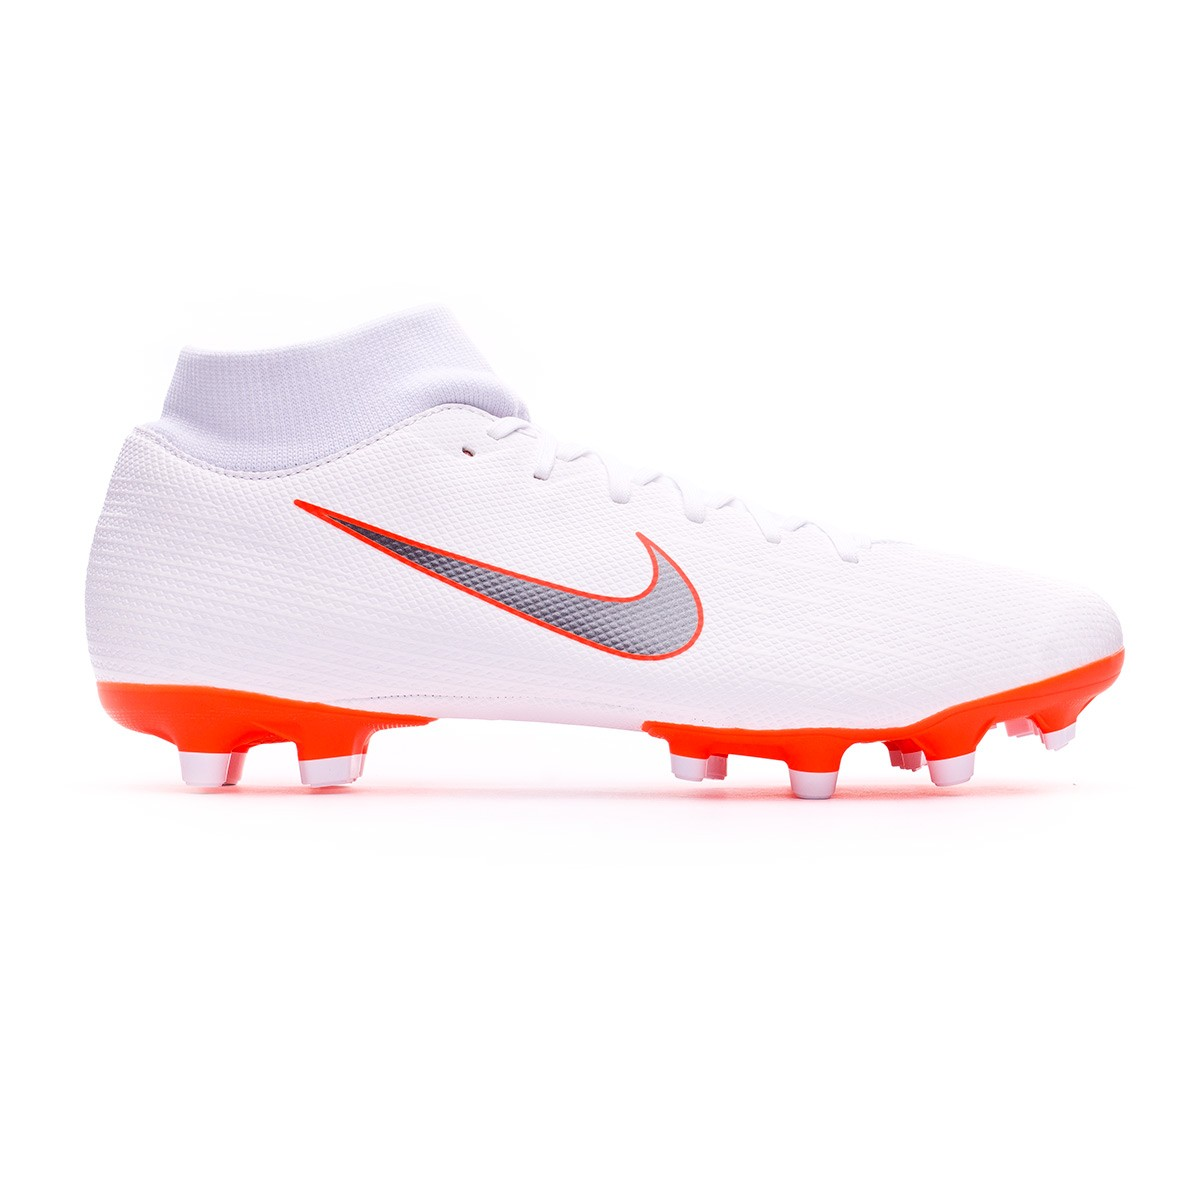 meet afc1a 953e5 ... Bota Mercurial Superfly VI Academy MG White-Metallic cool grey-Total  orange. CATEGORY. Football boots